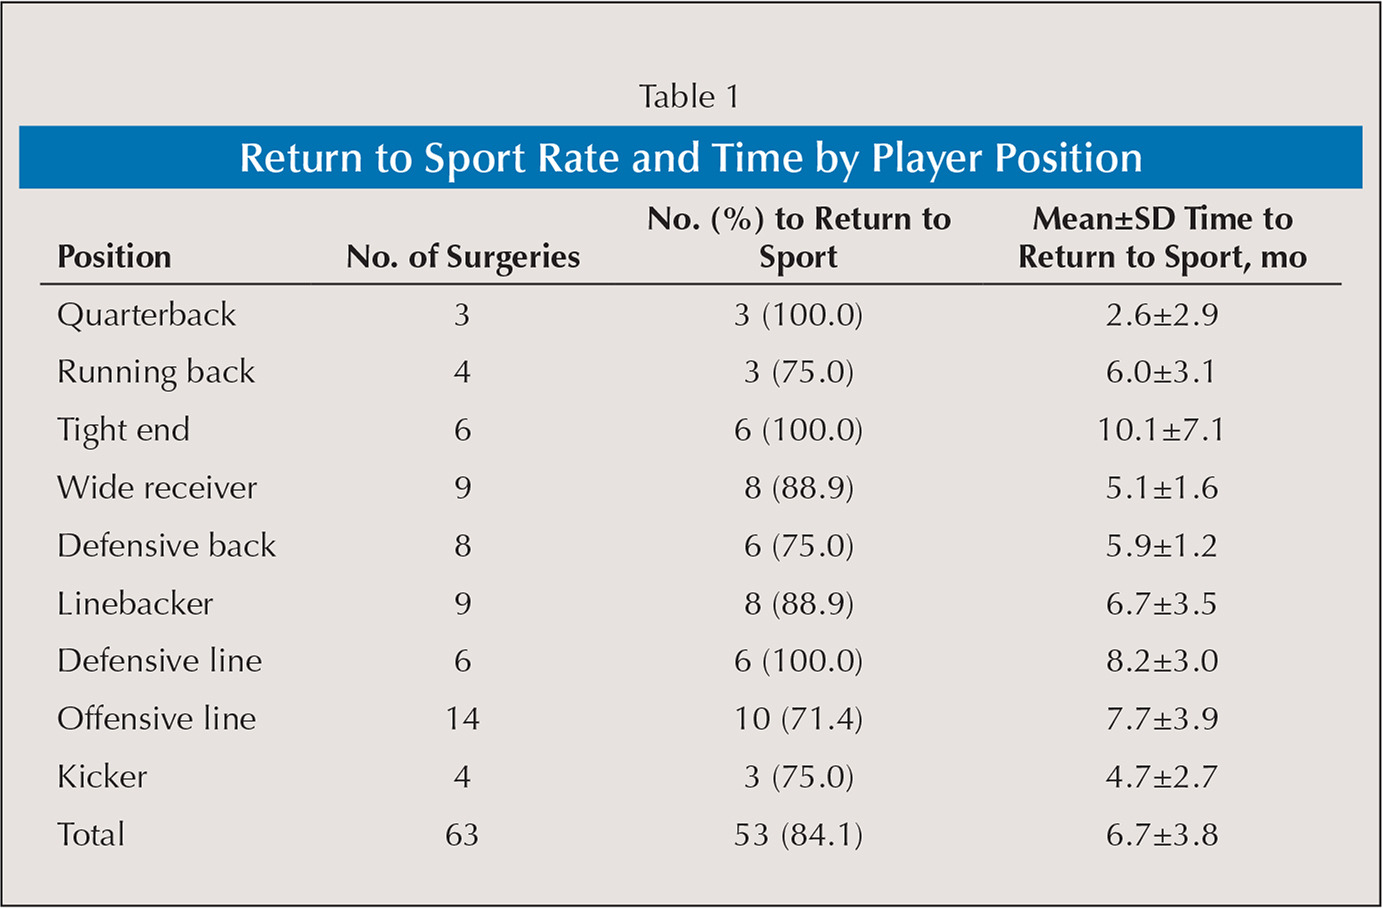 Return to Sport Rate and Time by Player Position